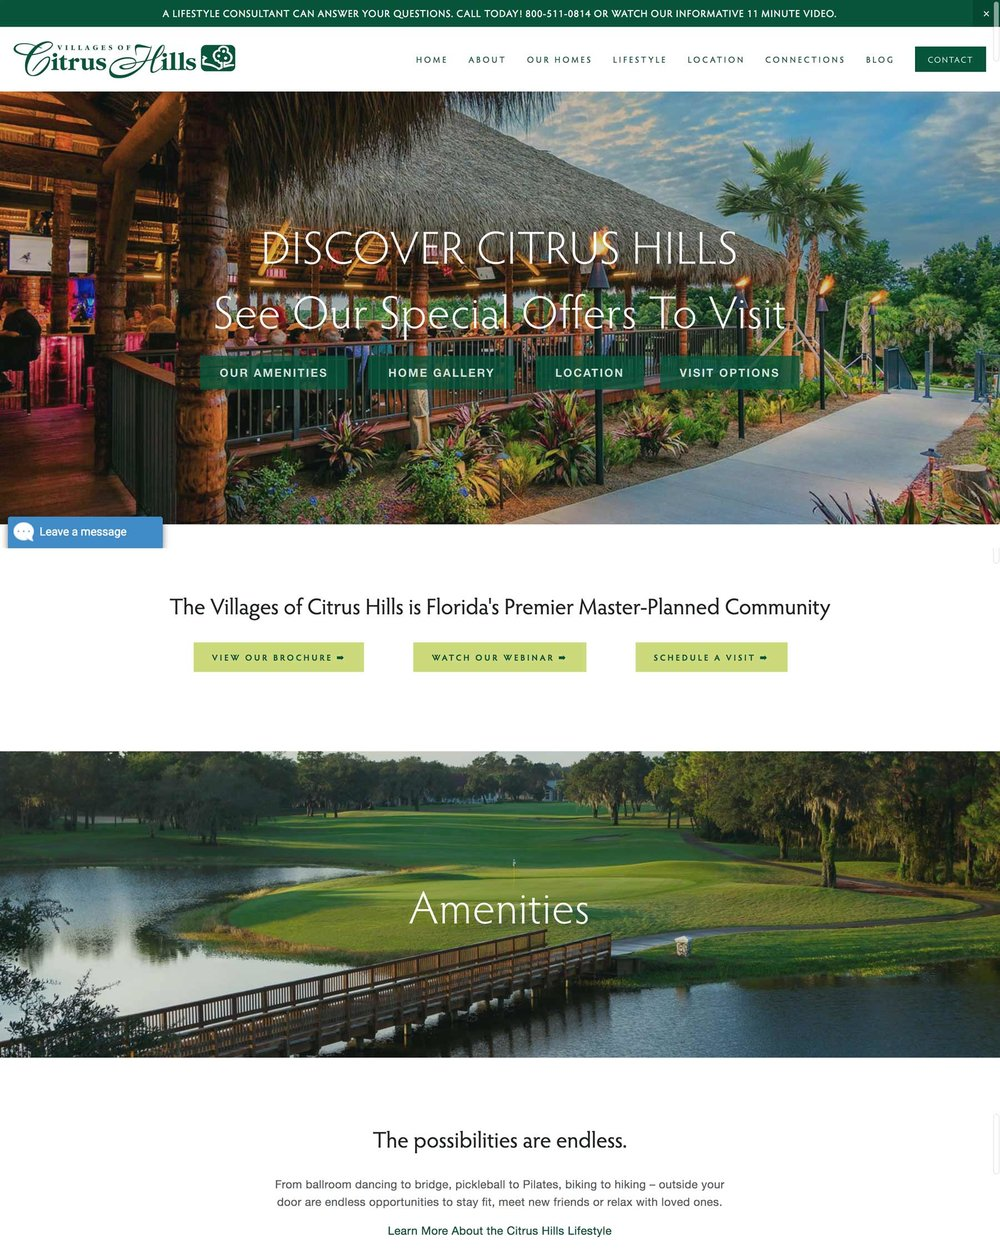 The Villages of Citrus Hills - Retirement Community Home Builder, Developer and Planned Community